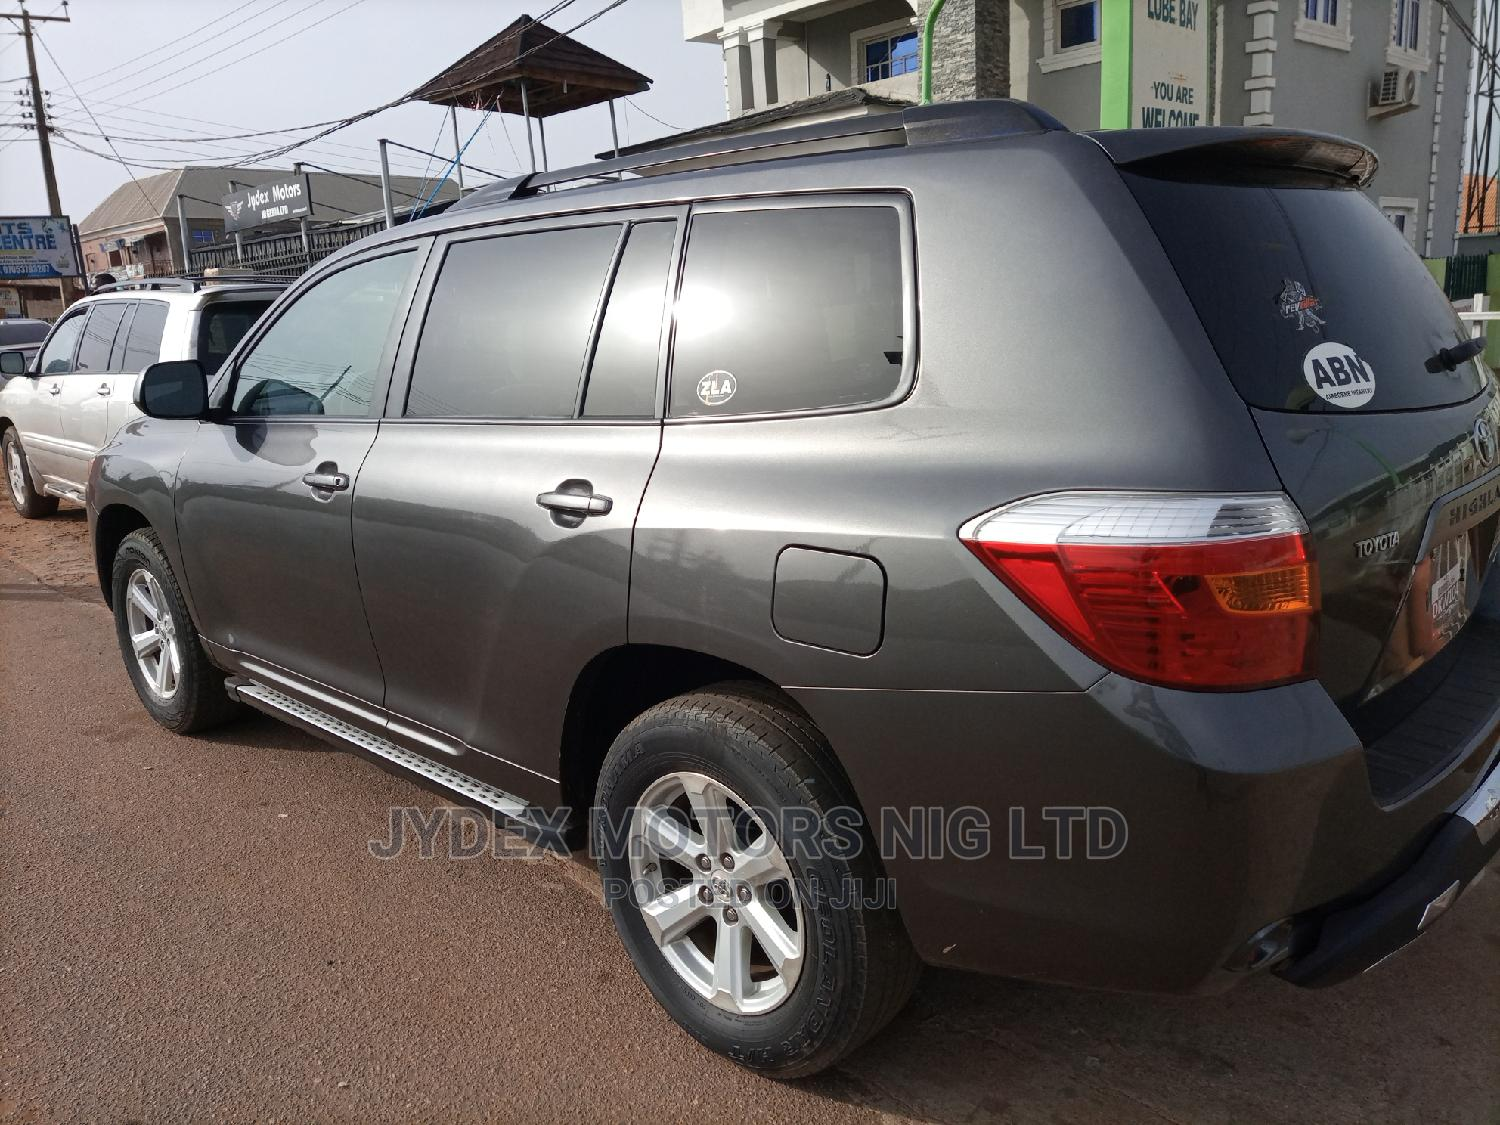 Toyota Highlander 2008 Gray | Cars for sale in Ilorin South, Kwara State, Nigeria